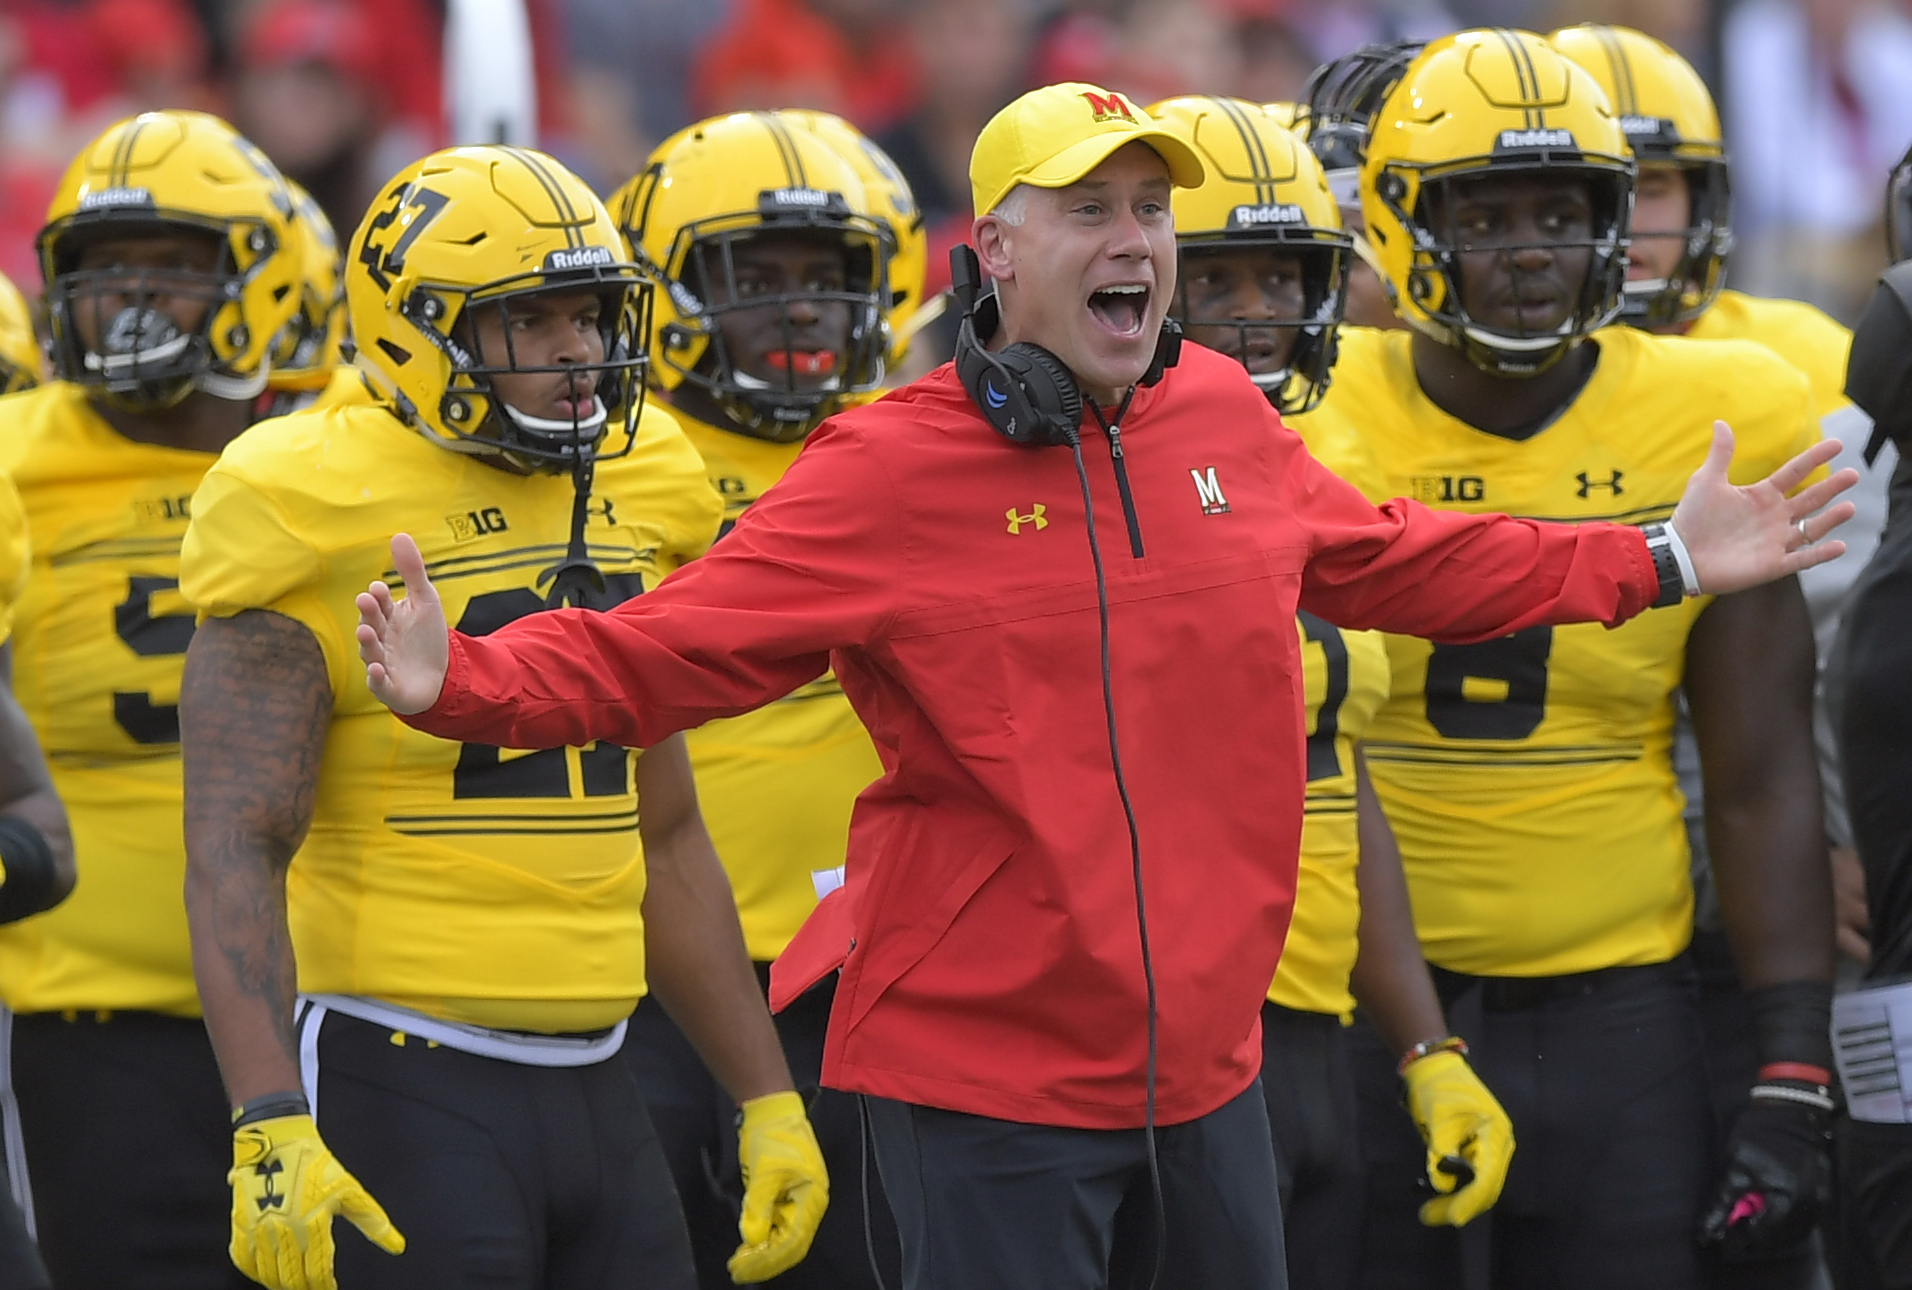 the Maryland Terrapins play the Indiana Hoosiers in football